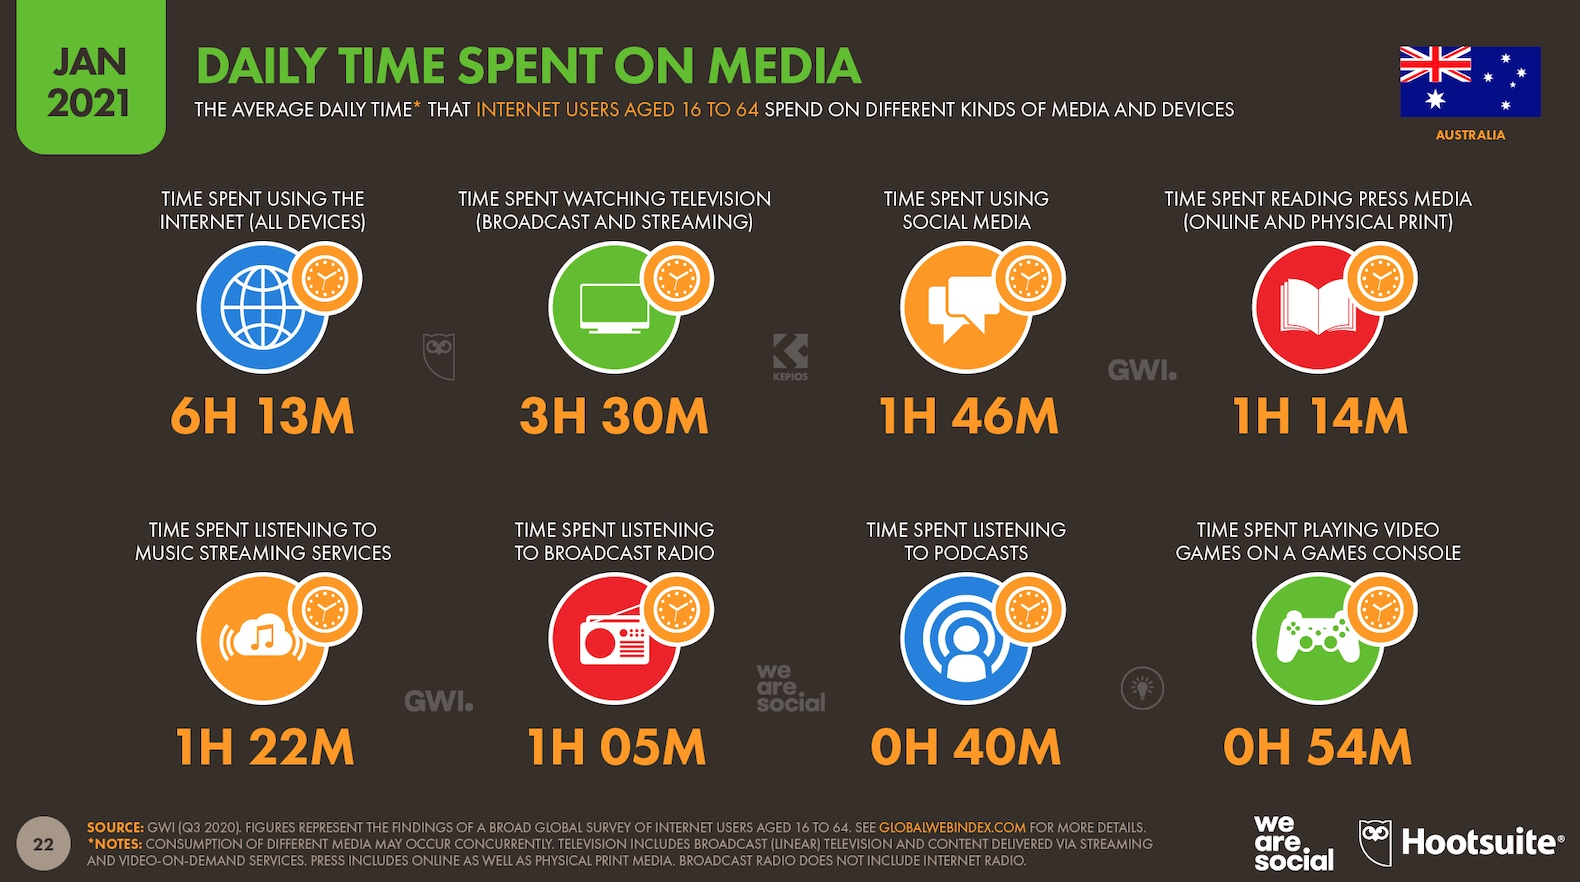 Digital in Australia:Time spent online has increased by 10% year-on-year